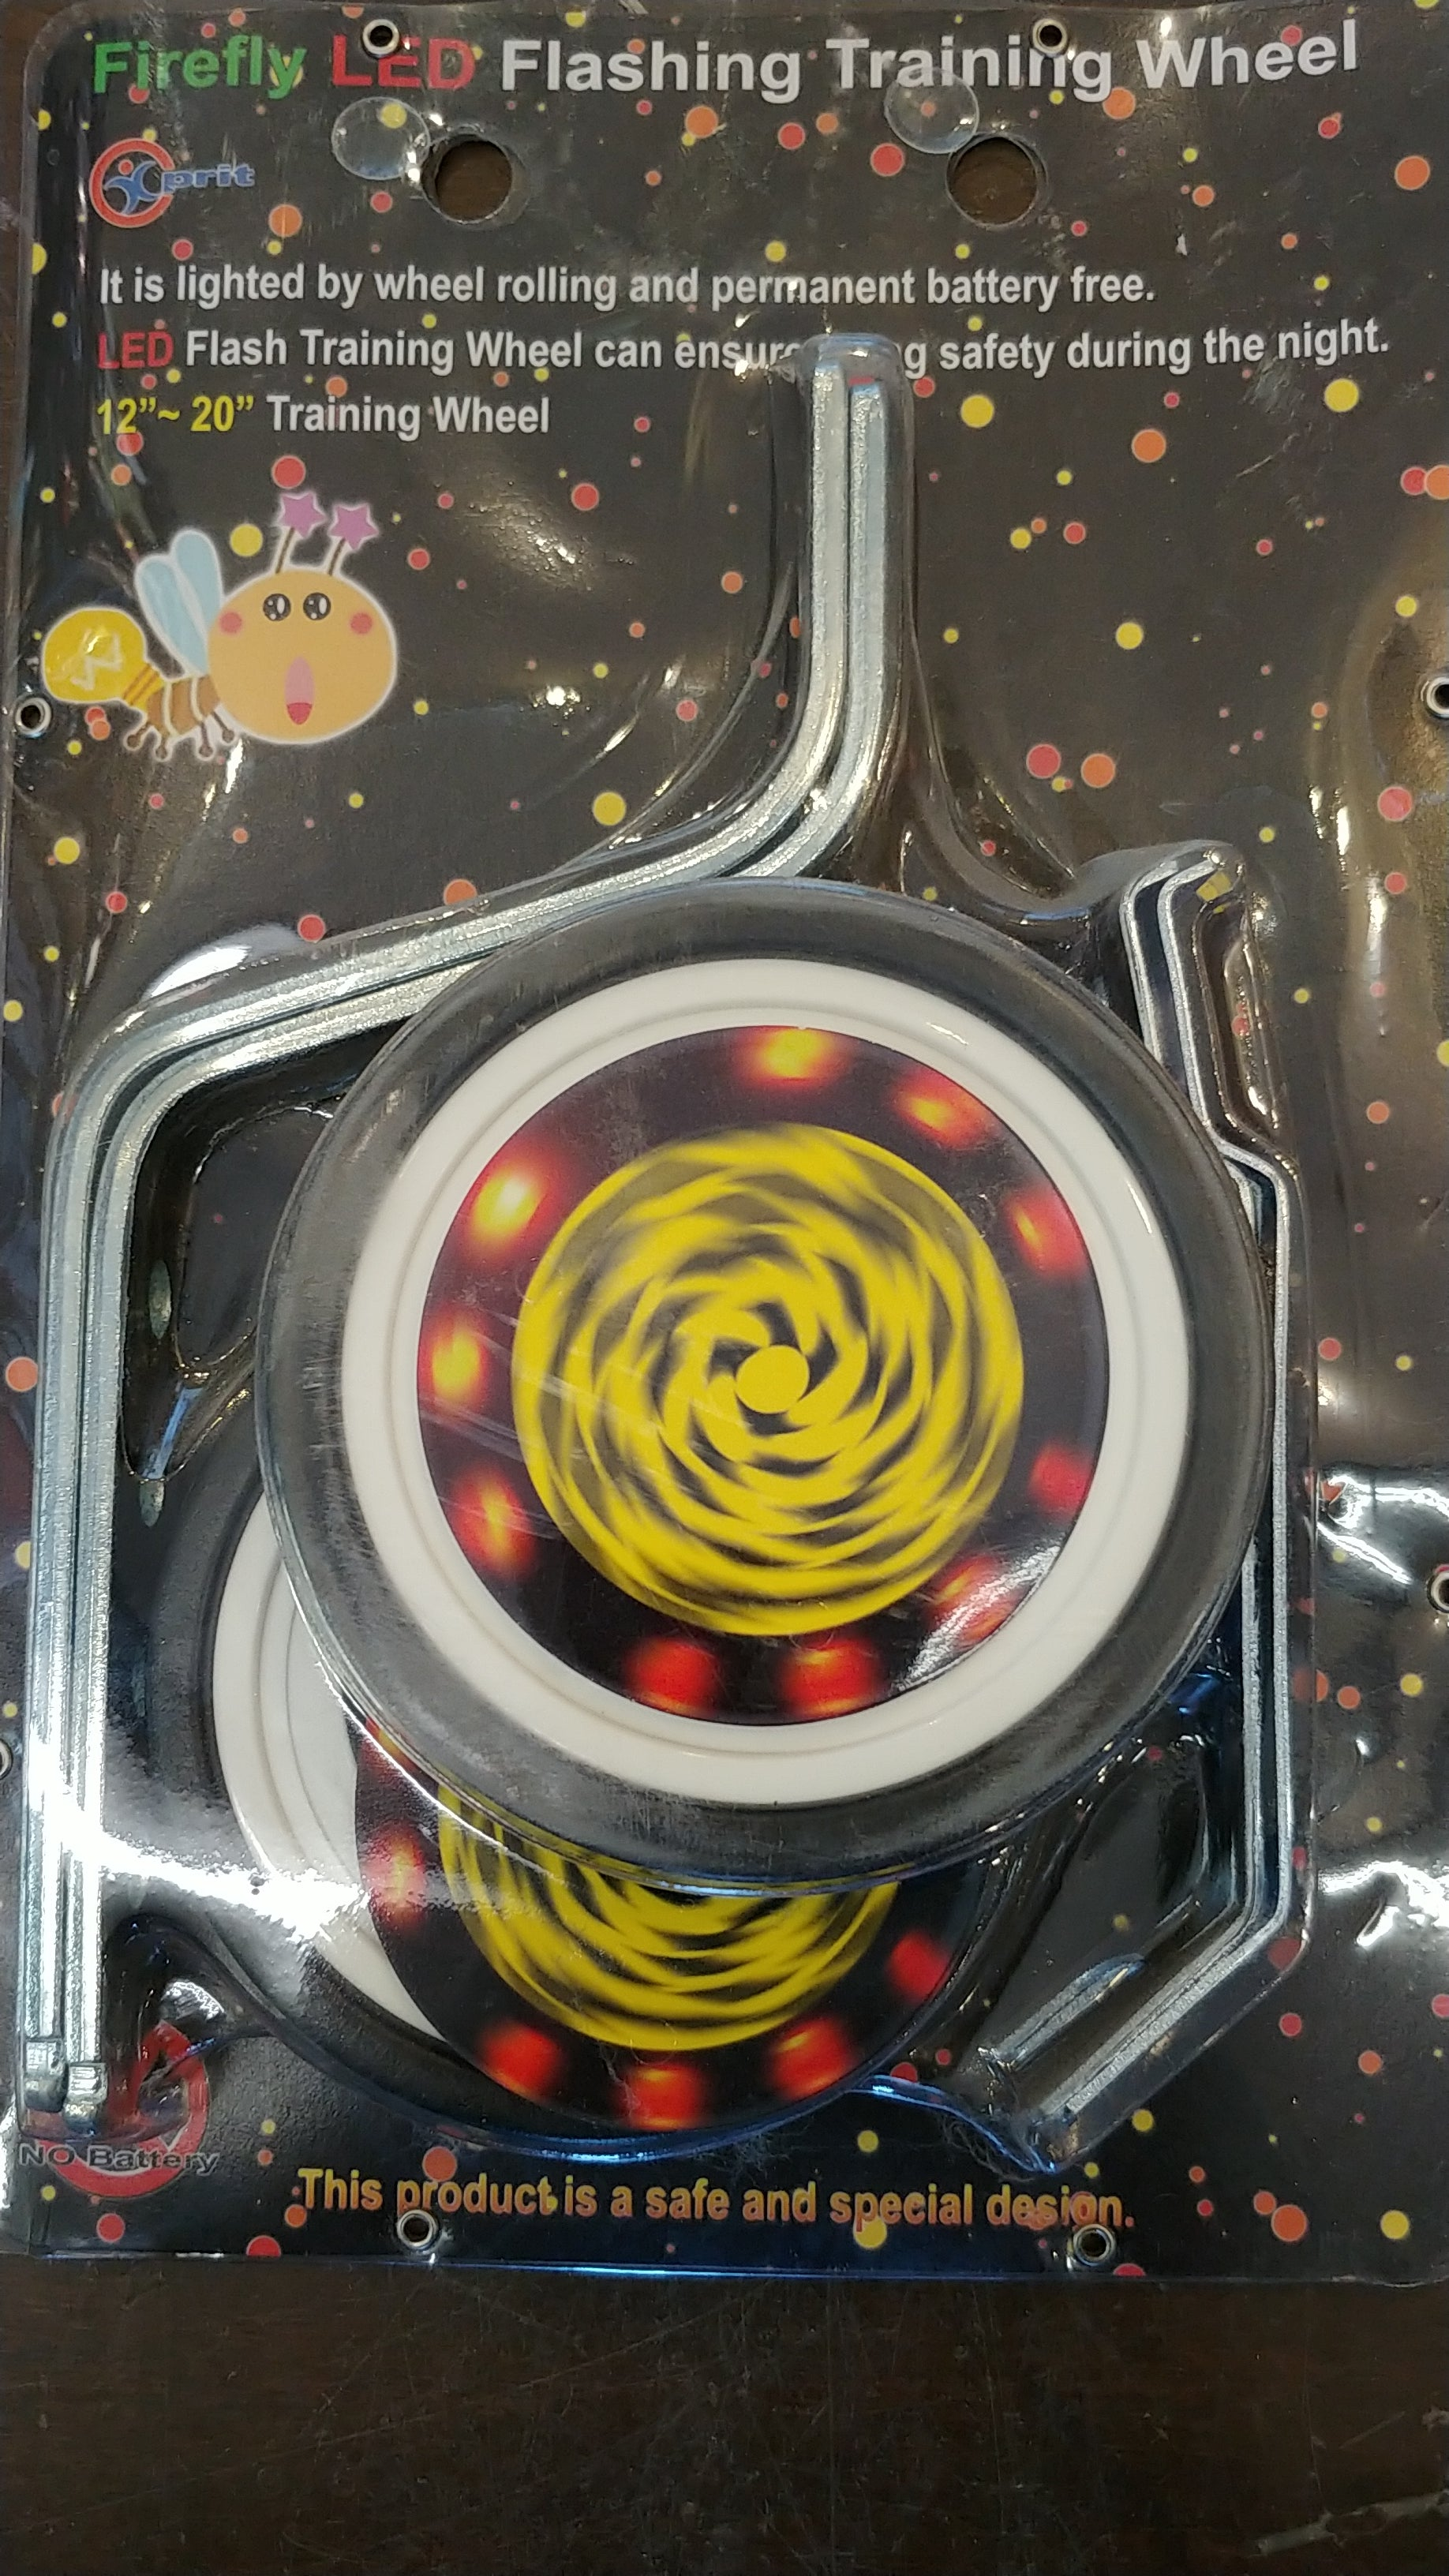 Roue d'entrainement firefly led flashing